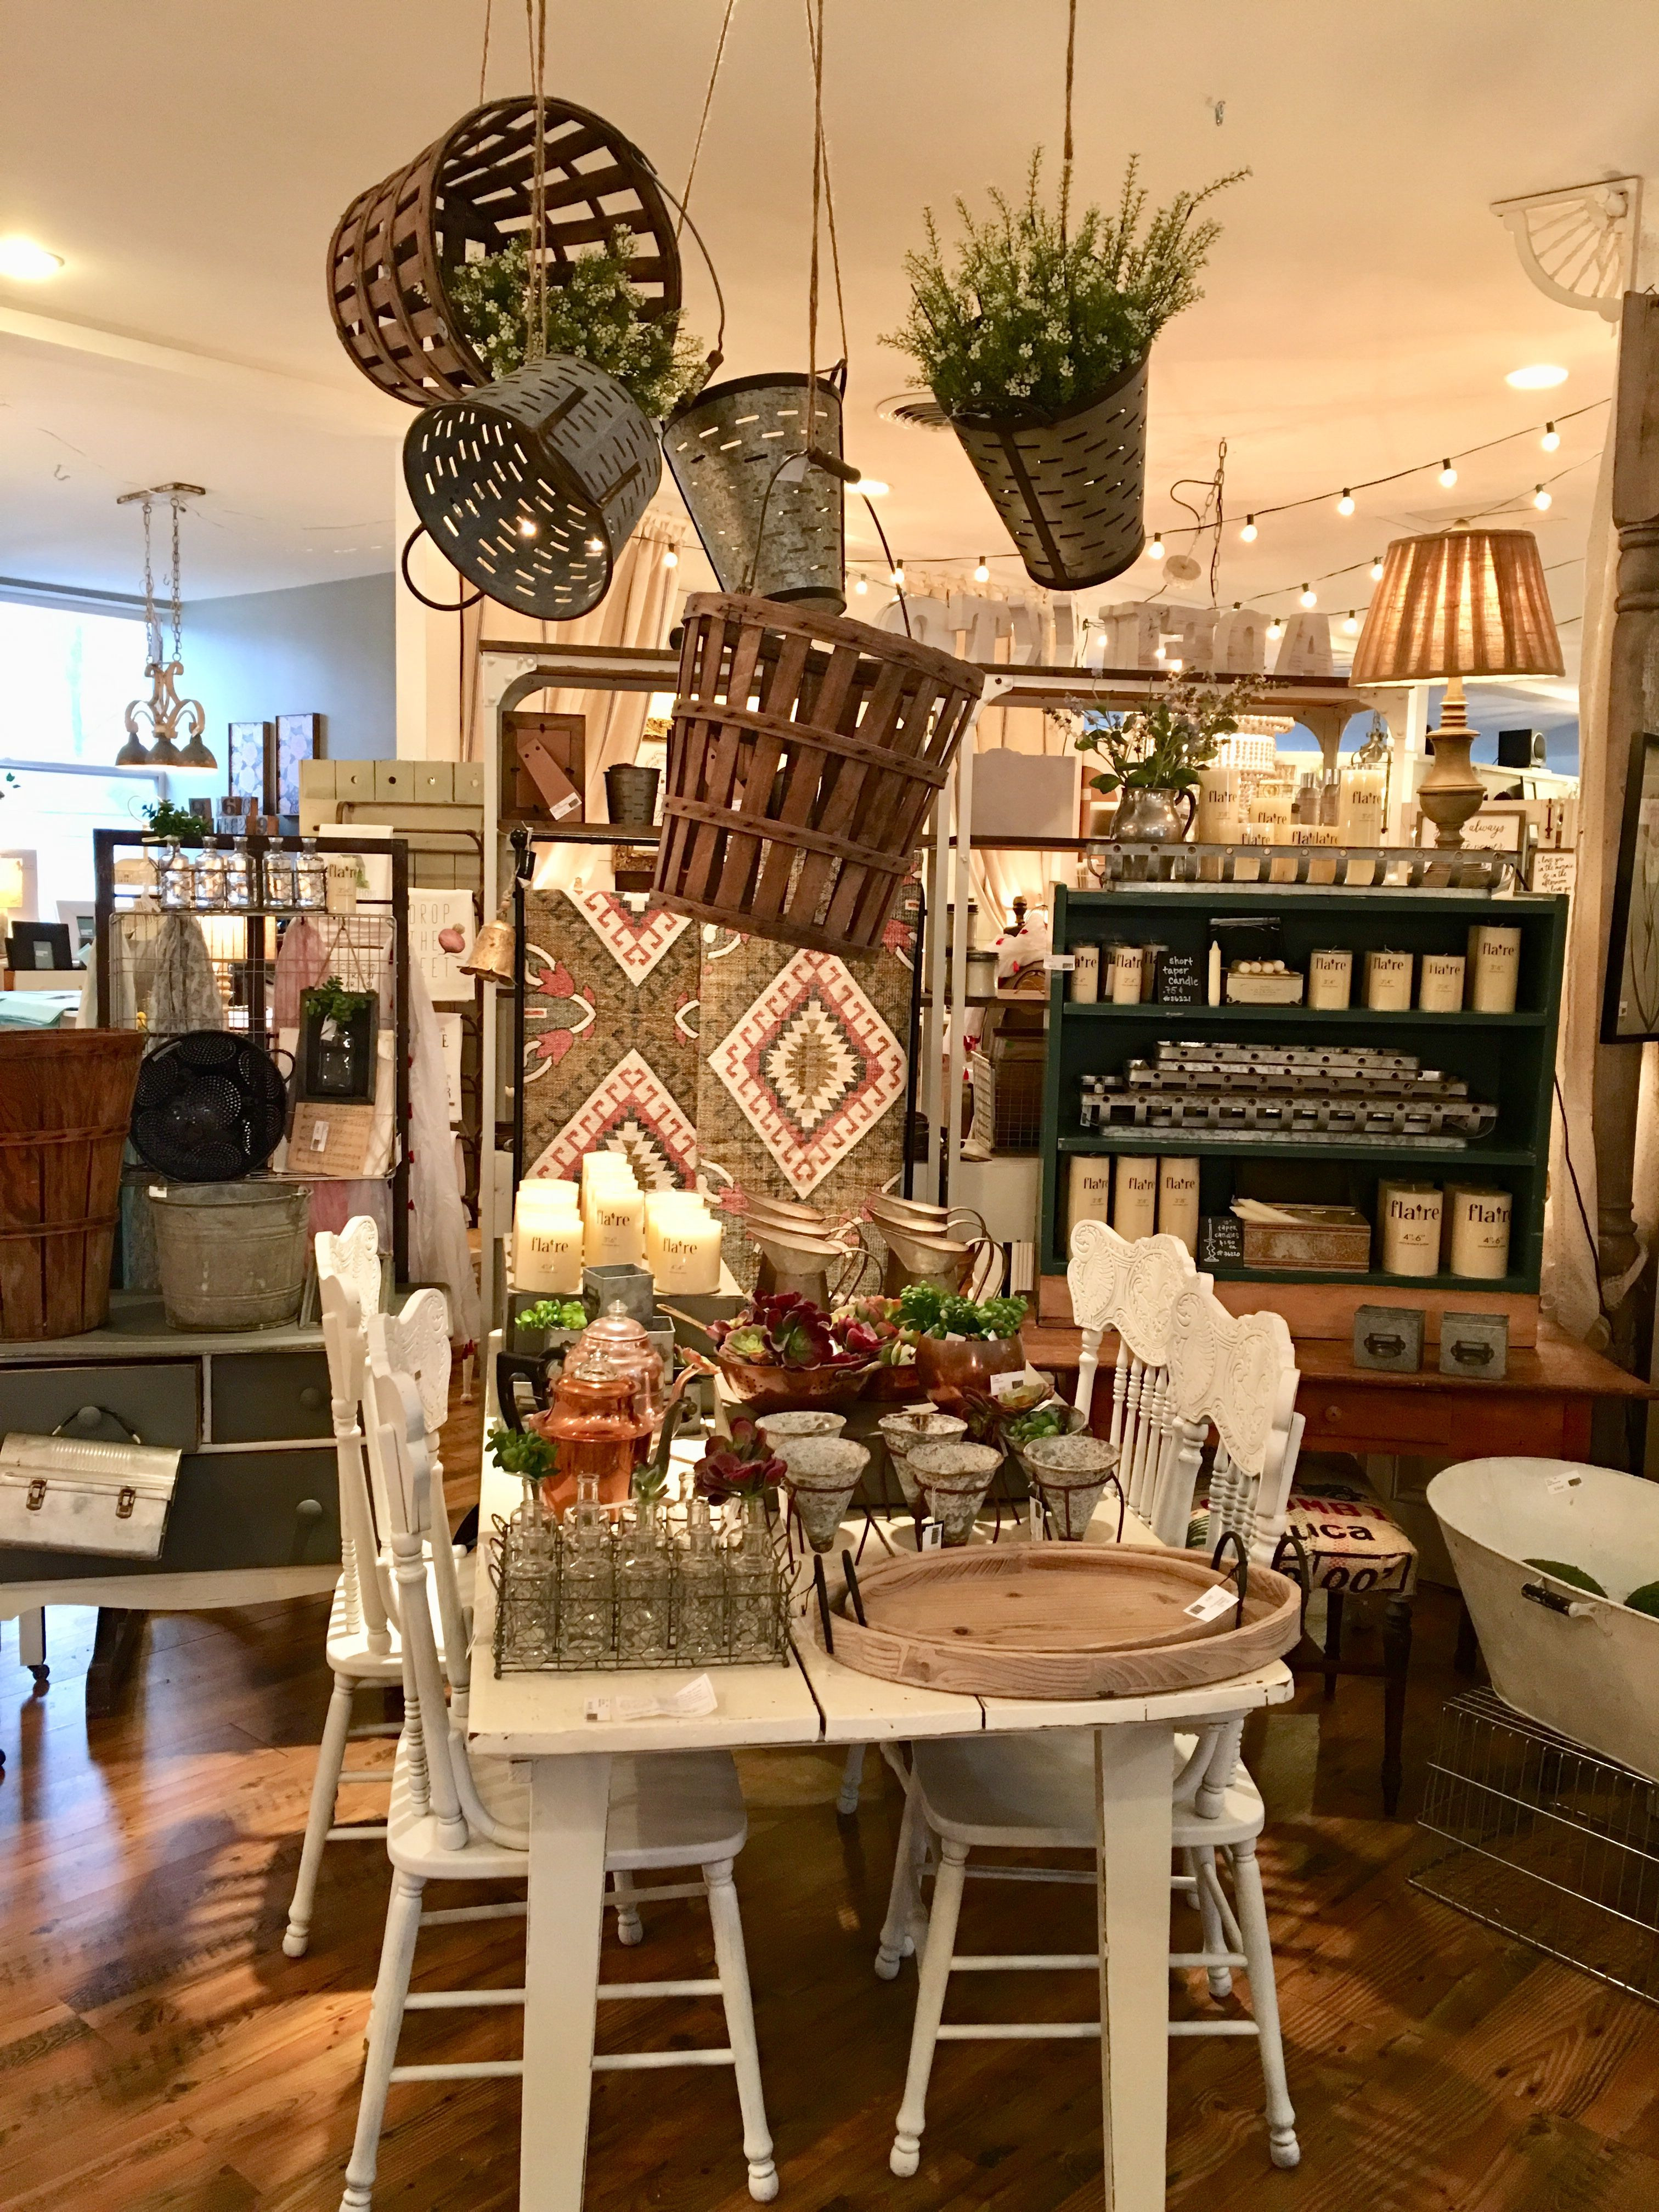 Antique Furniture St Louis Best Of Display at the White Rabbit St Louis